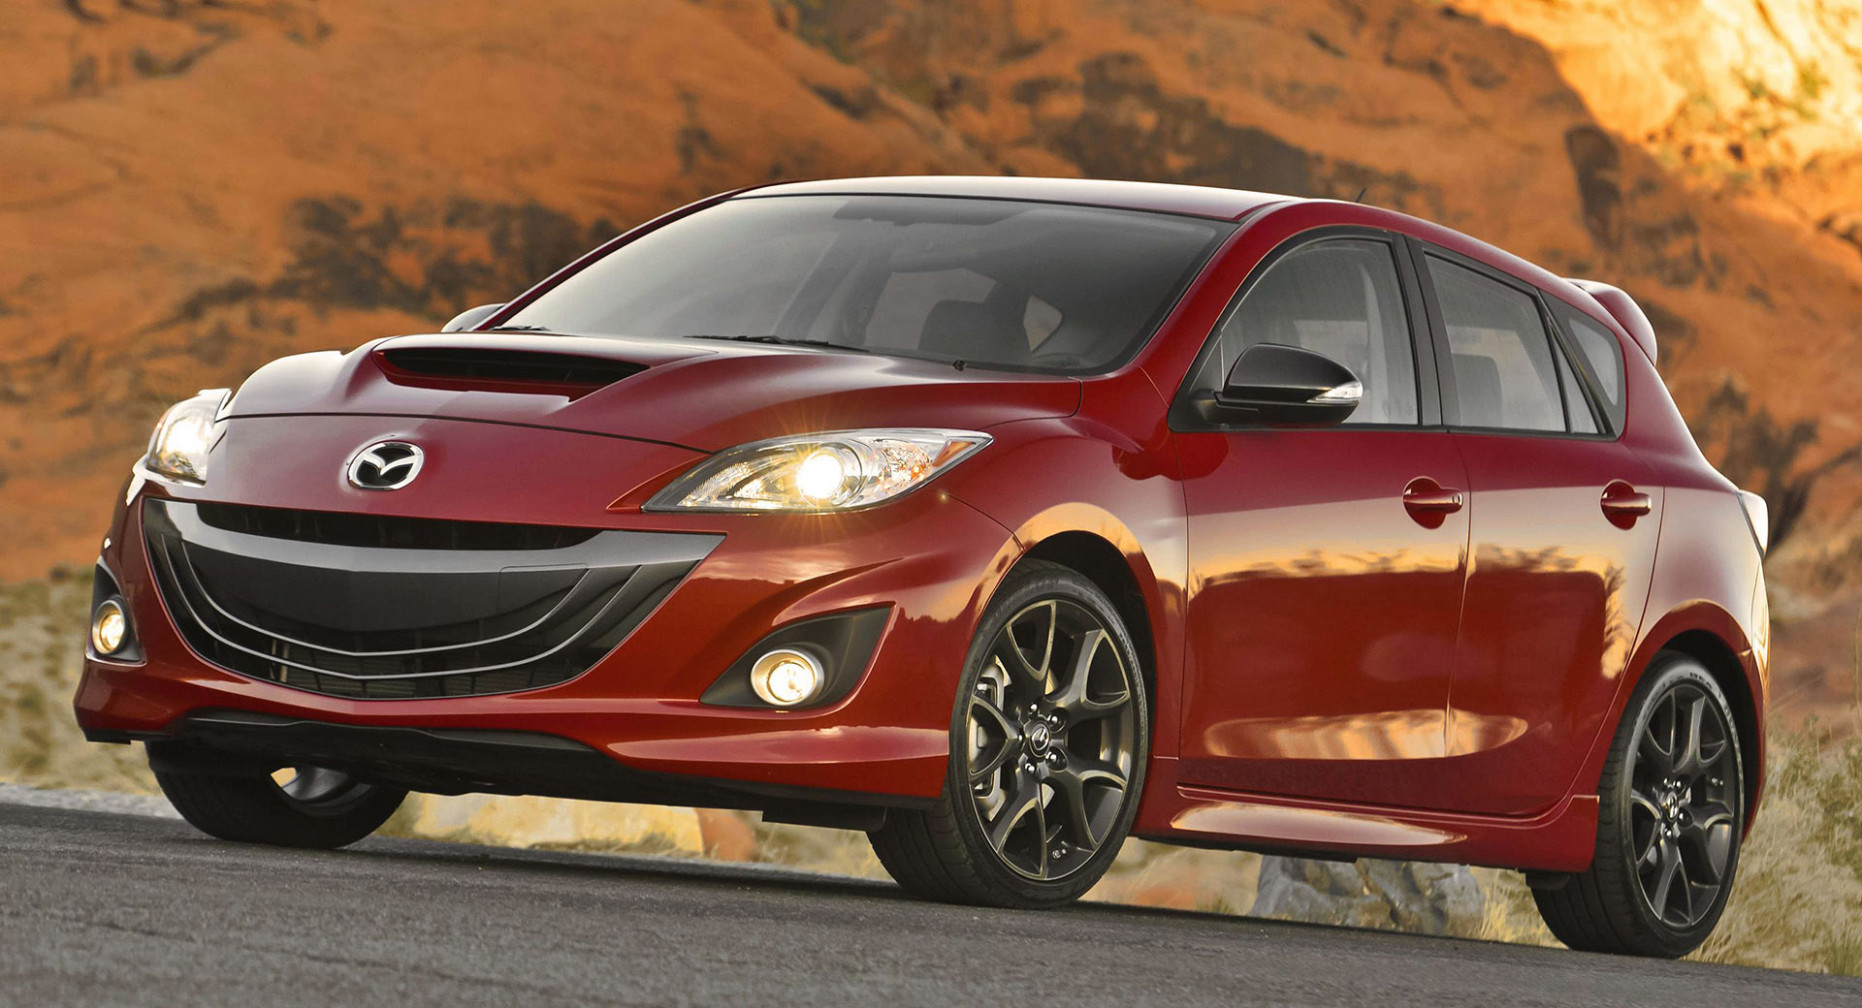 Performance and New Engine 2022 Mazdaspeed 3